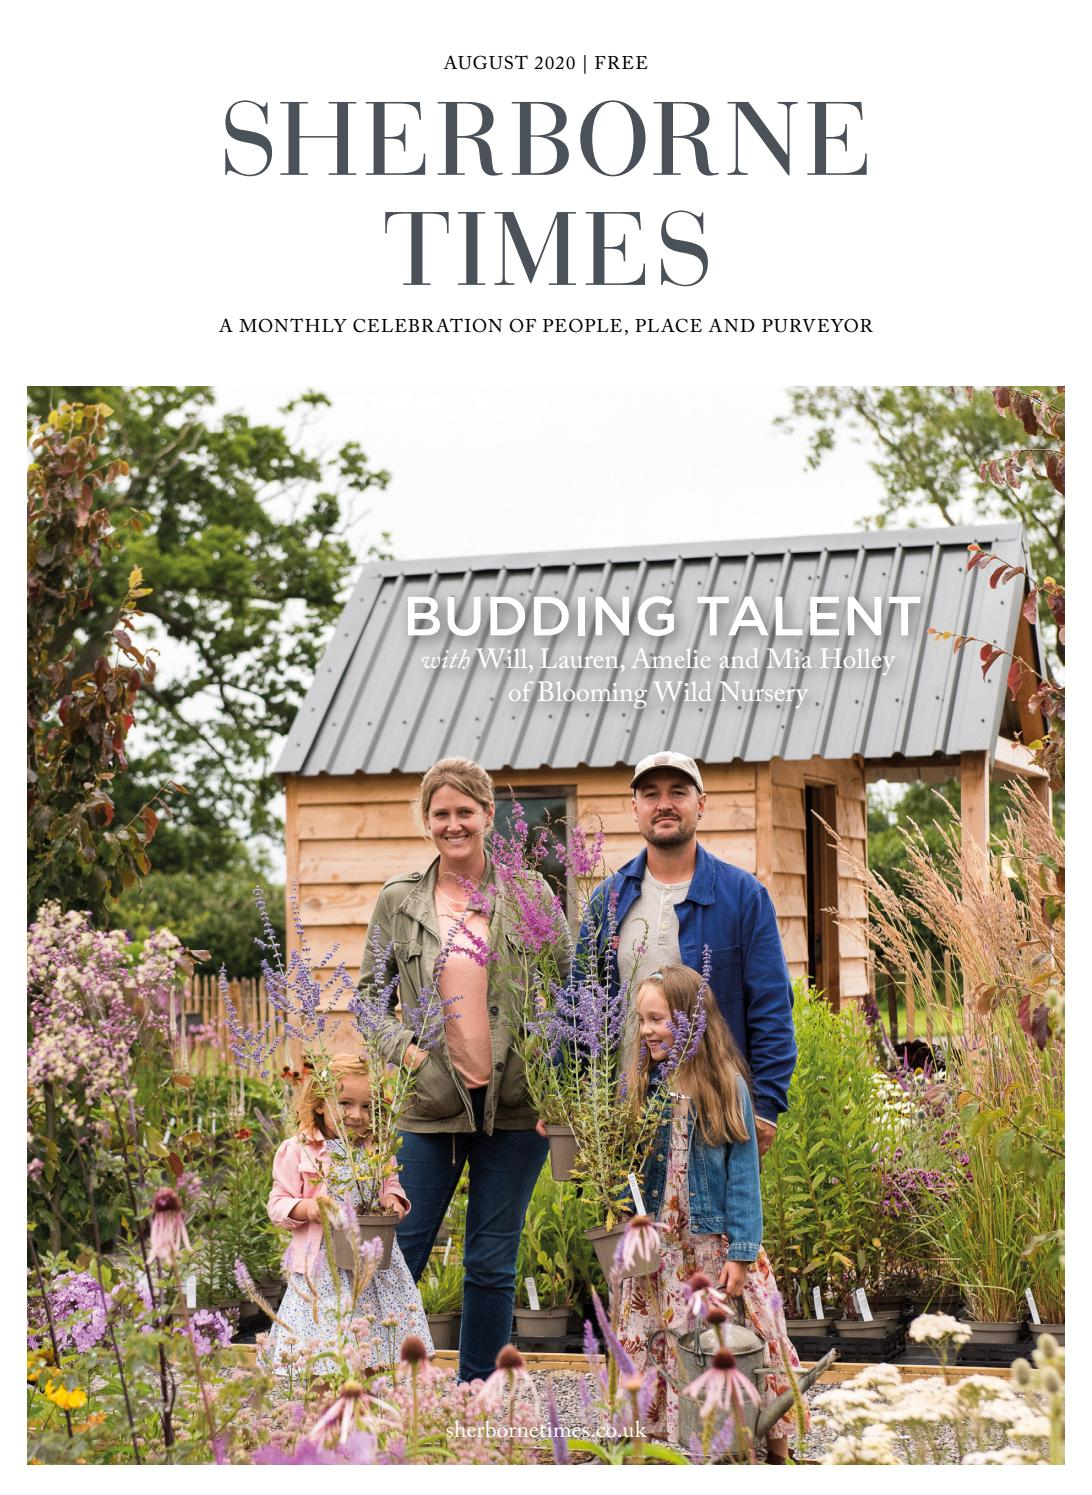 Sherborne Times August 2020 By Sherborne Times Issuu